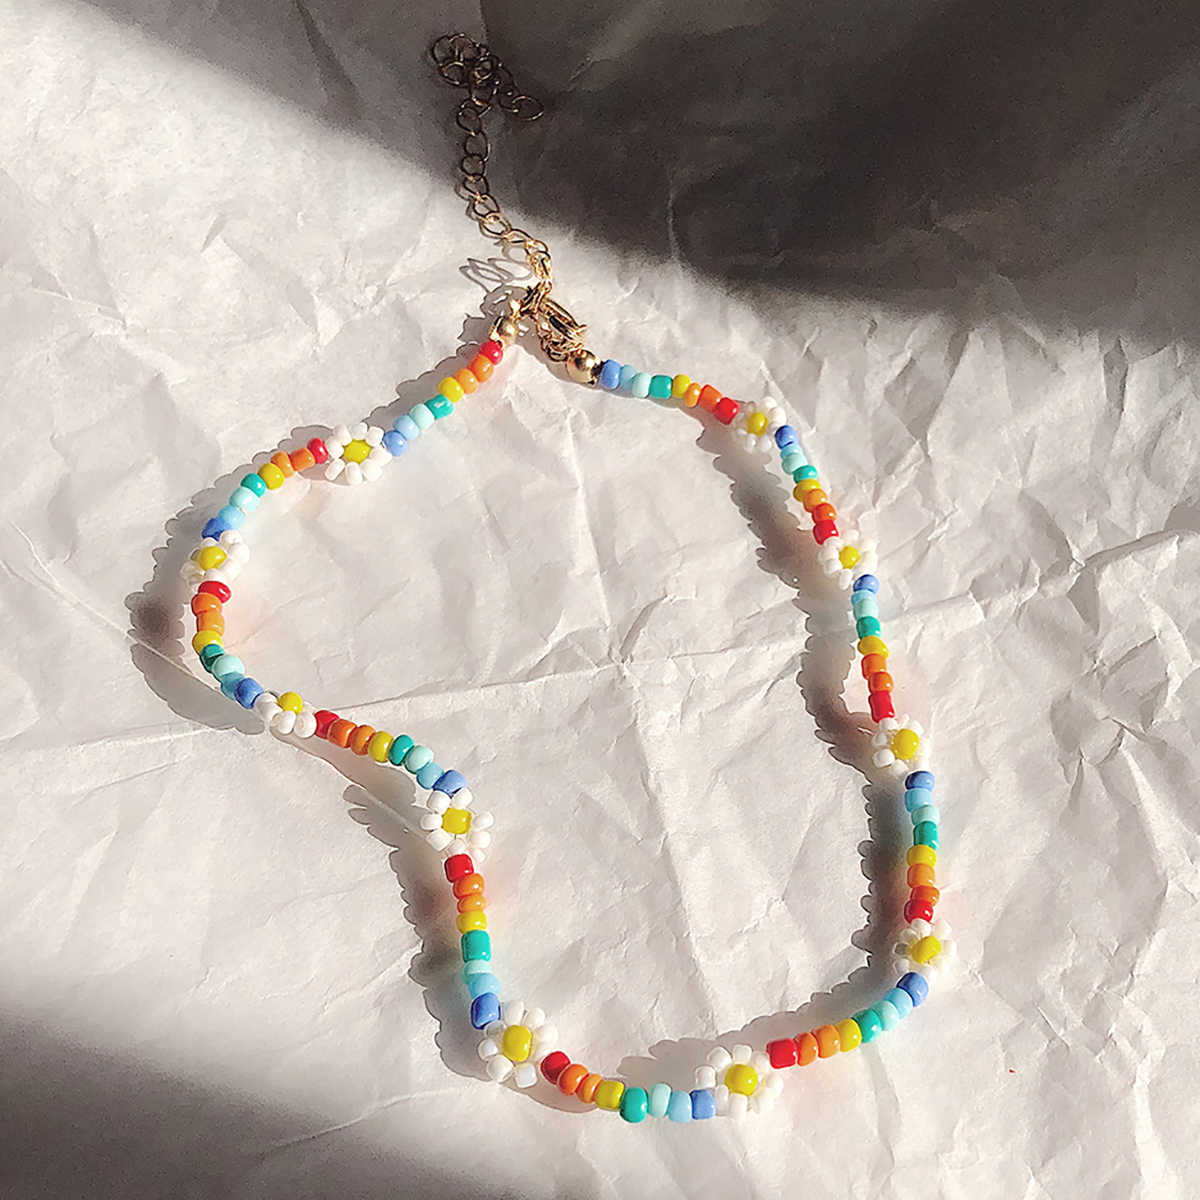 SHIXIN Boho Colorful Small Beads Choker Necklace for Women Simple Beaded Flower Necklace Handmade Collar Jewelry Collier Femme